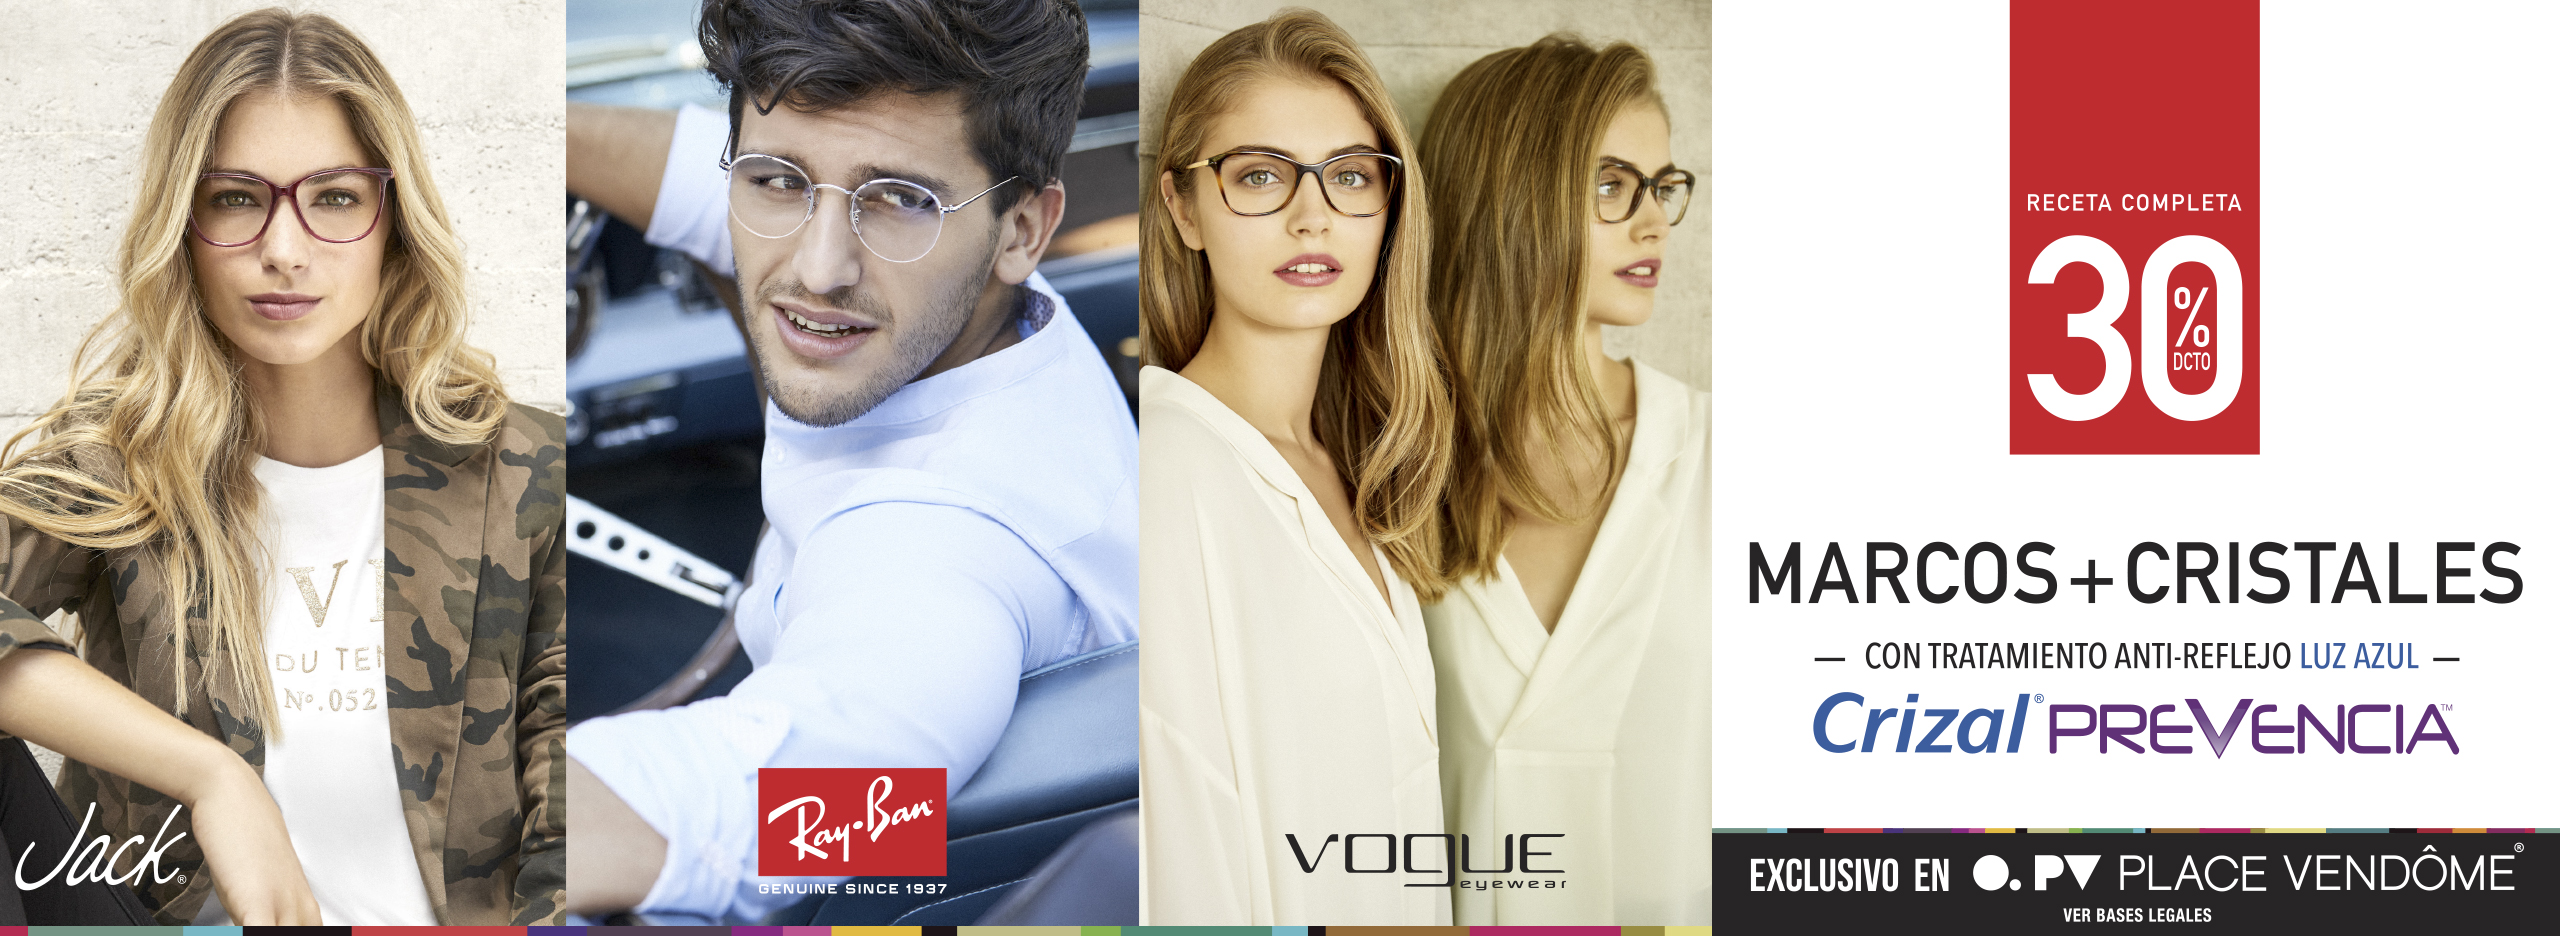 opticos rb vogue jack